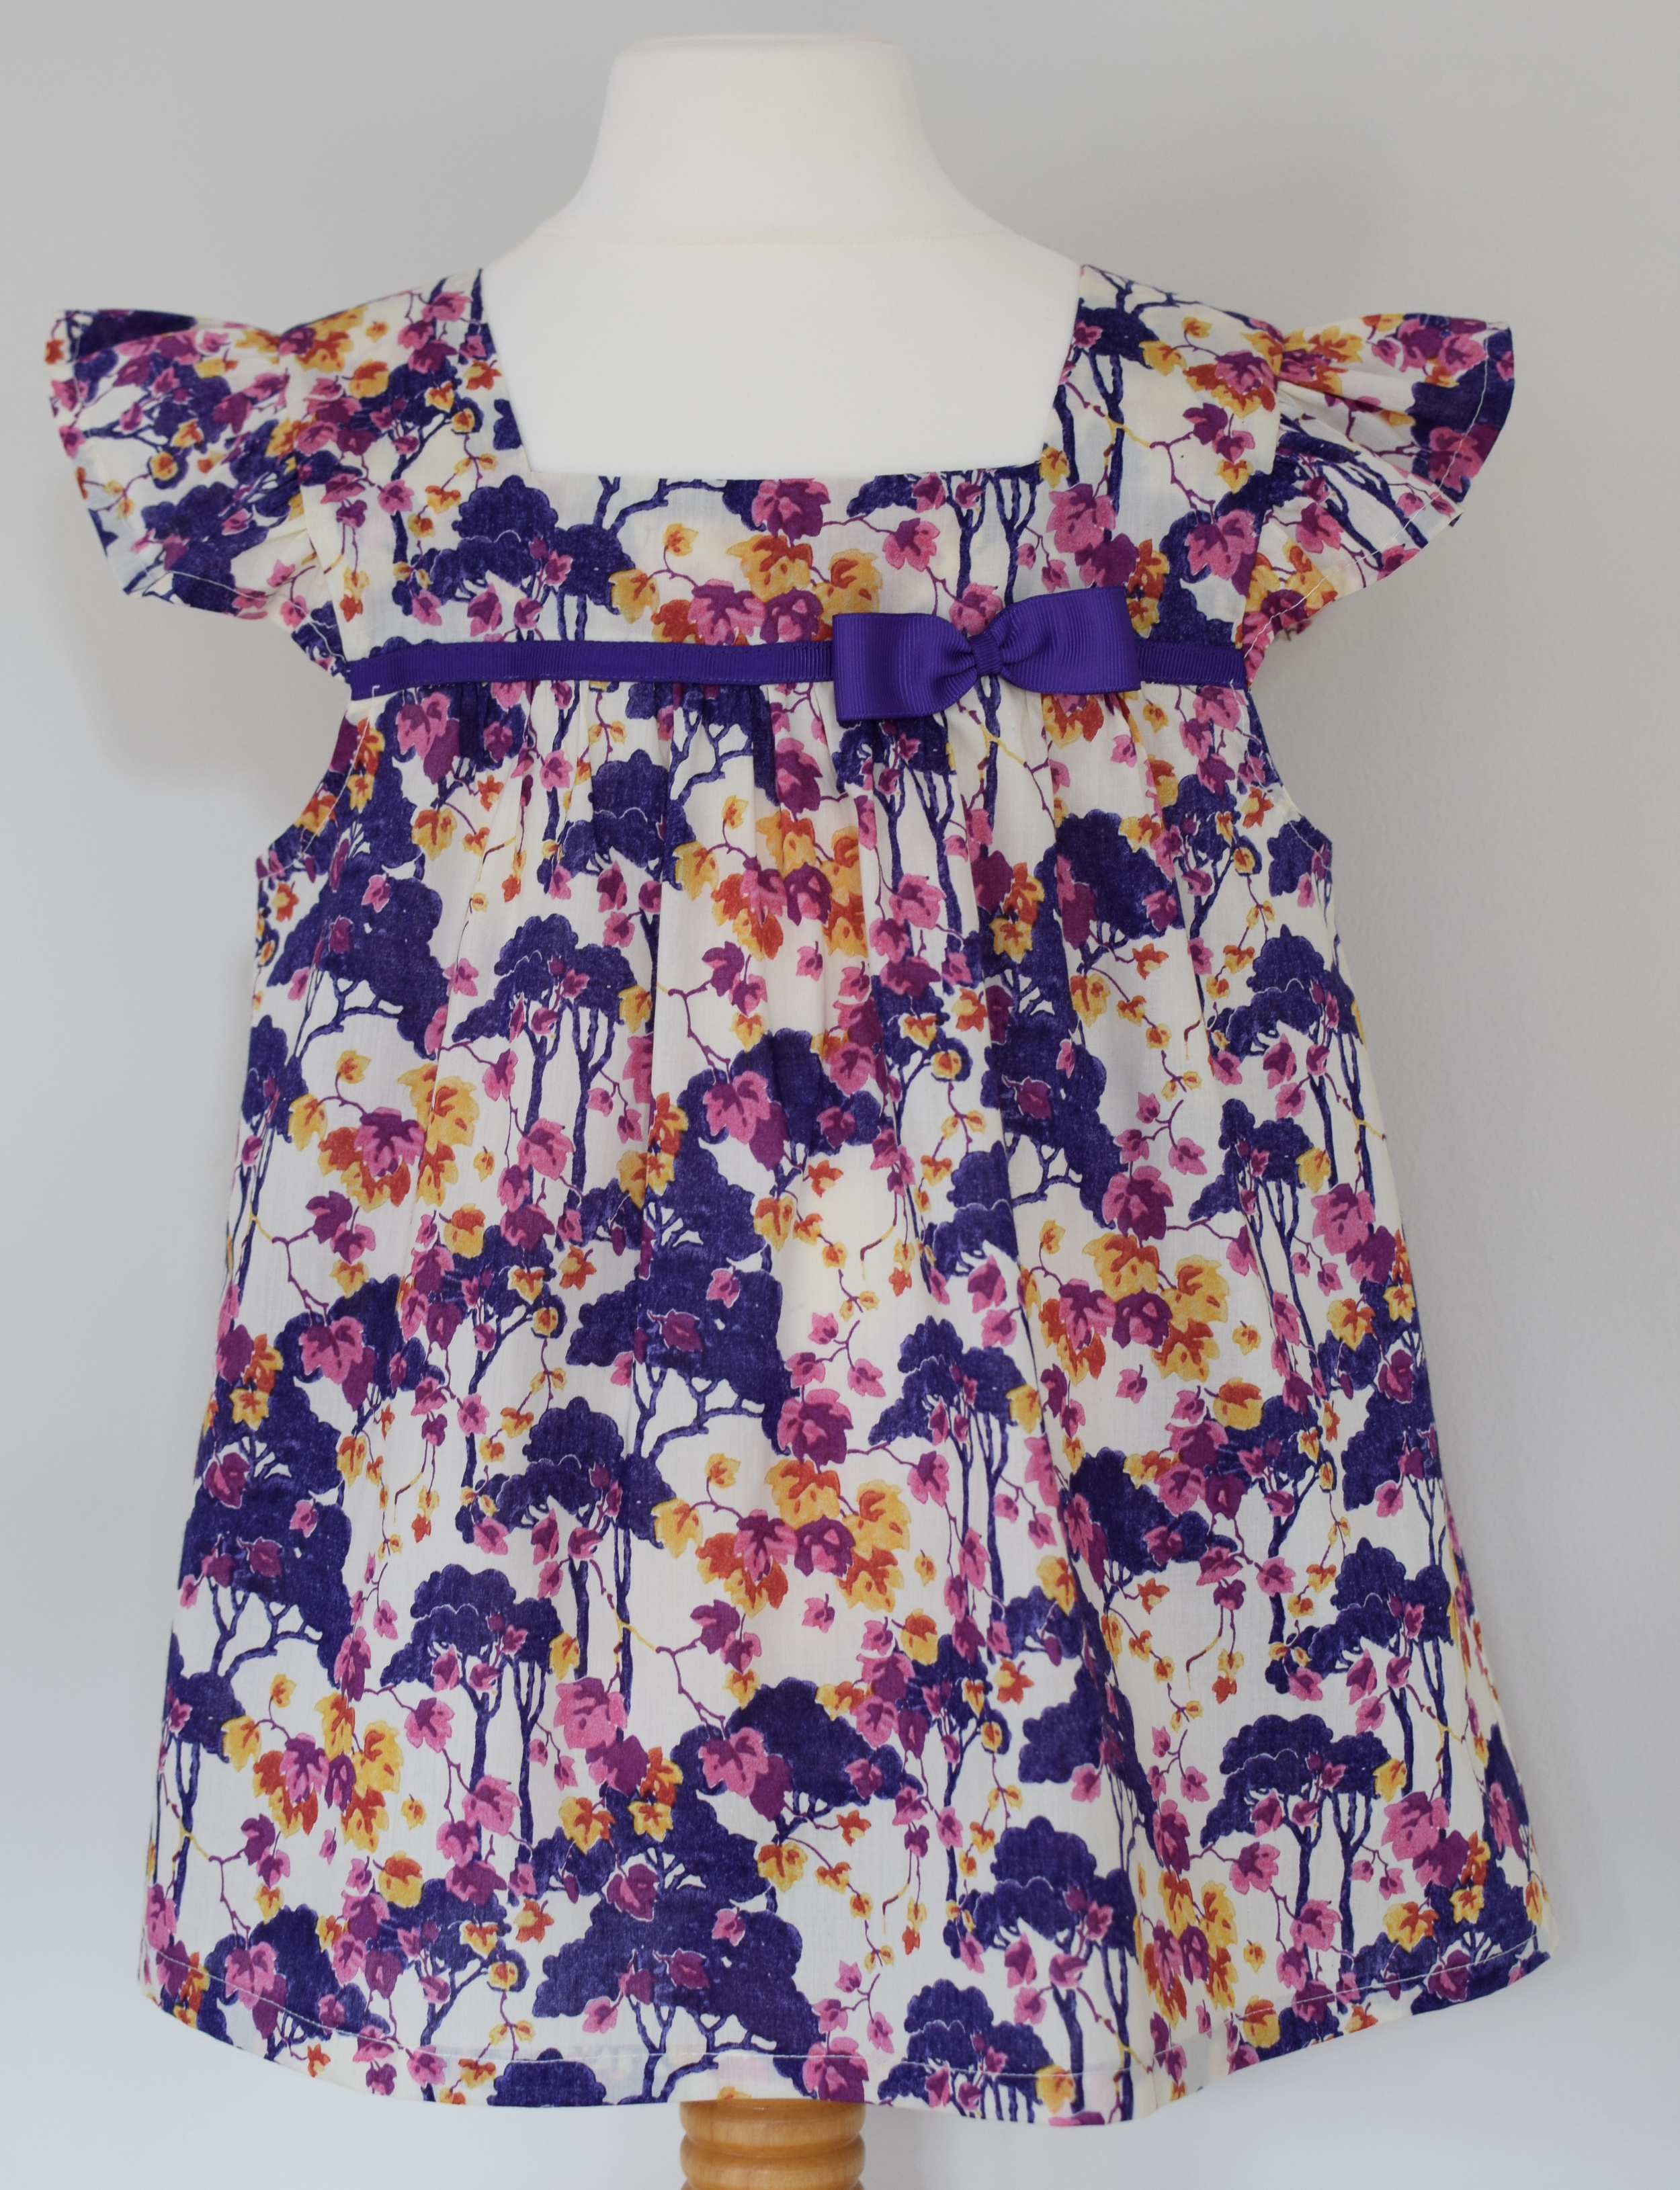 Liberty Ombrellino   Exclusive Liberty print ruffle sleeve top with square neck and a fixed purple grosgrain ribbon.  Available in size large  £35